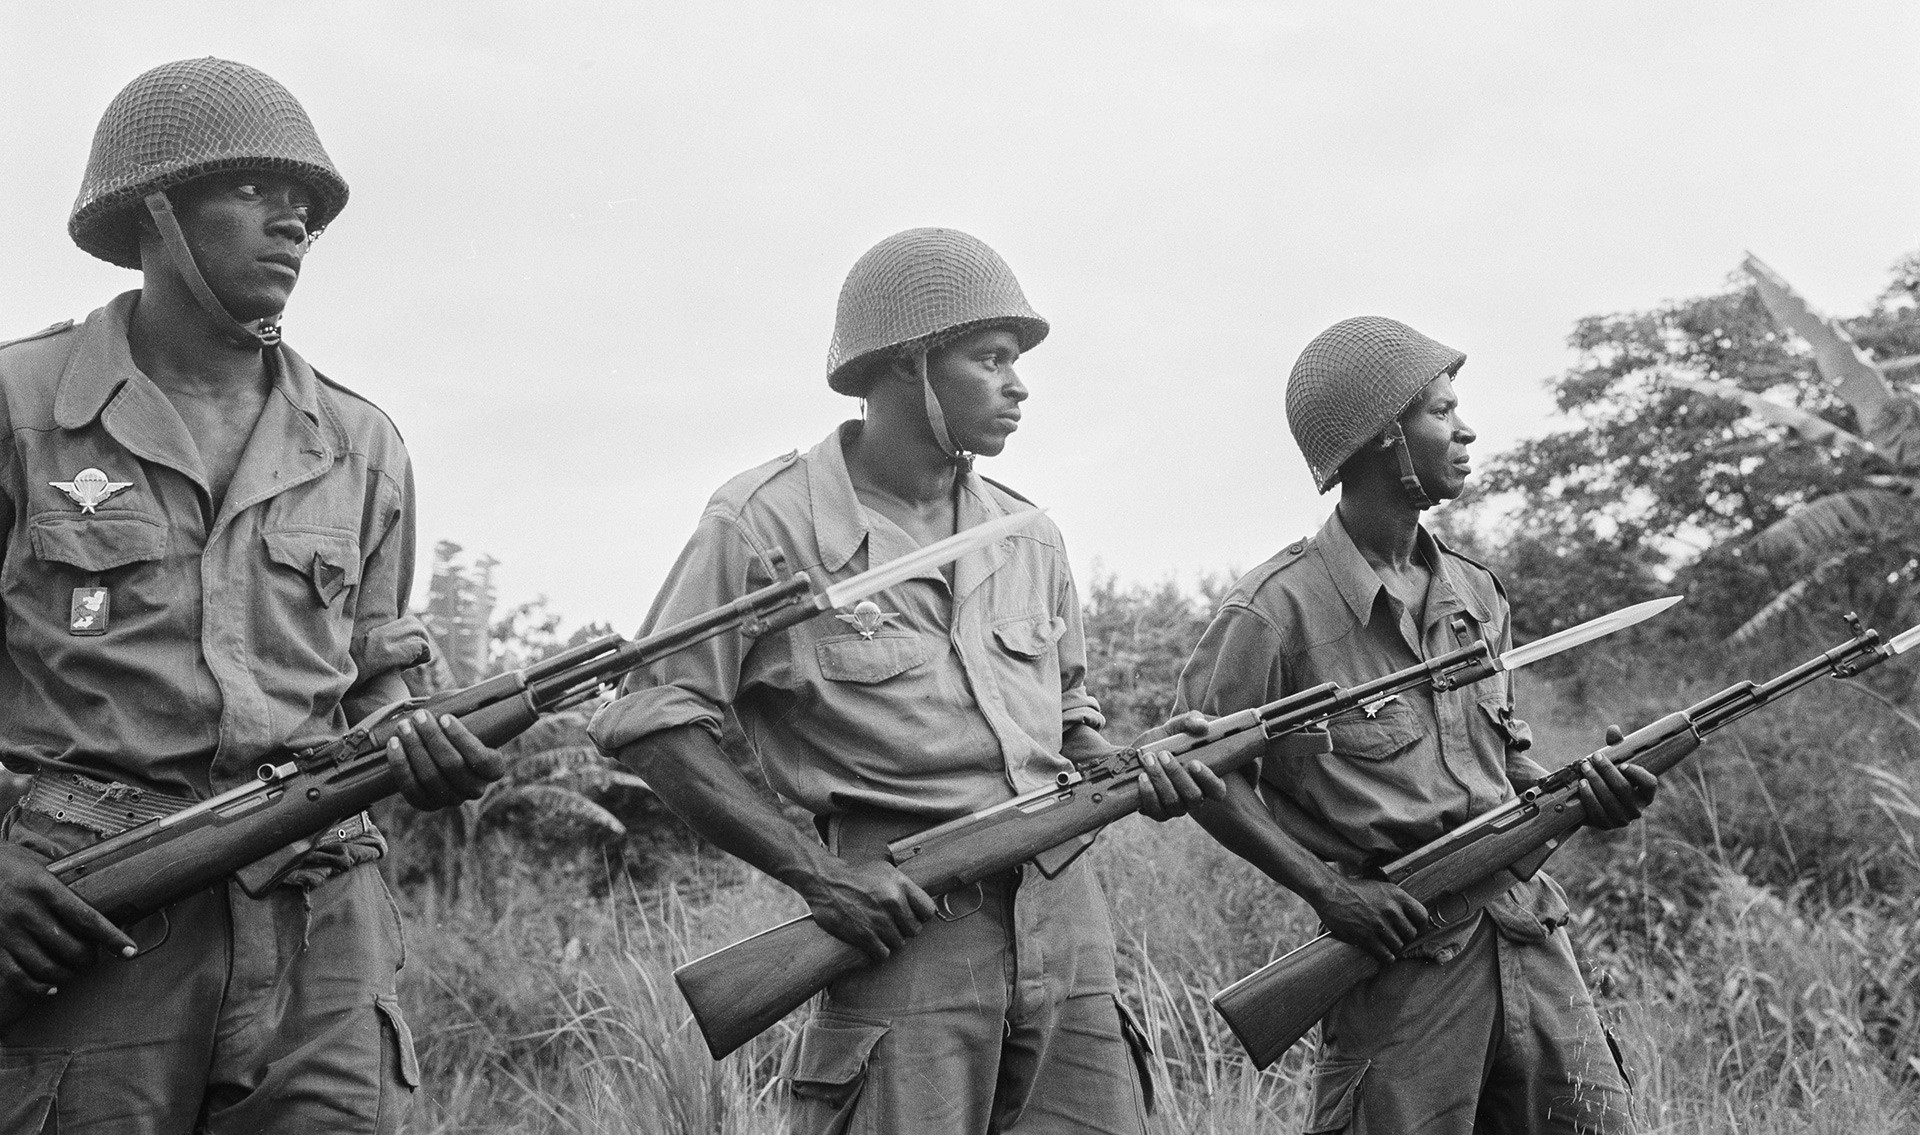 Soldiers of the Congolese National Army.